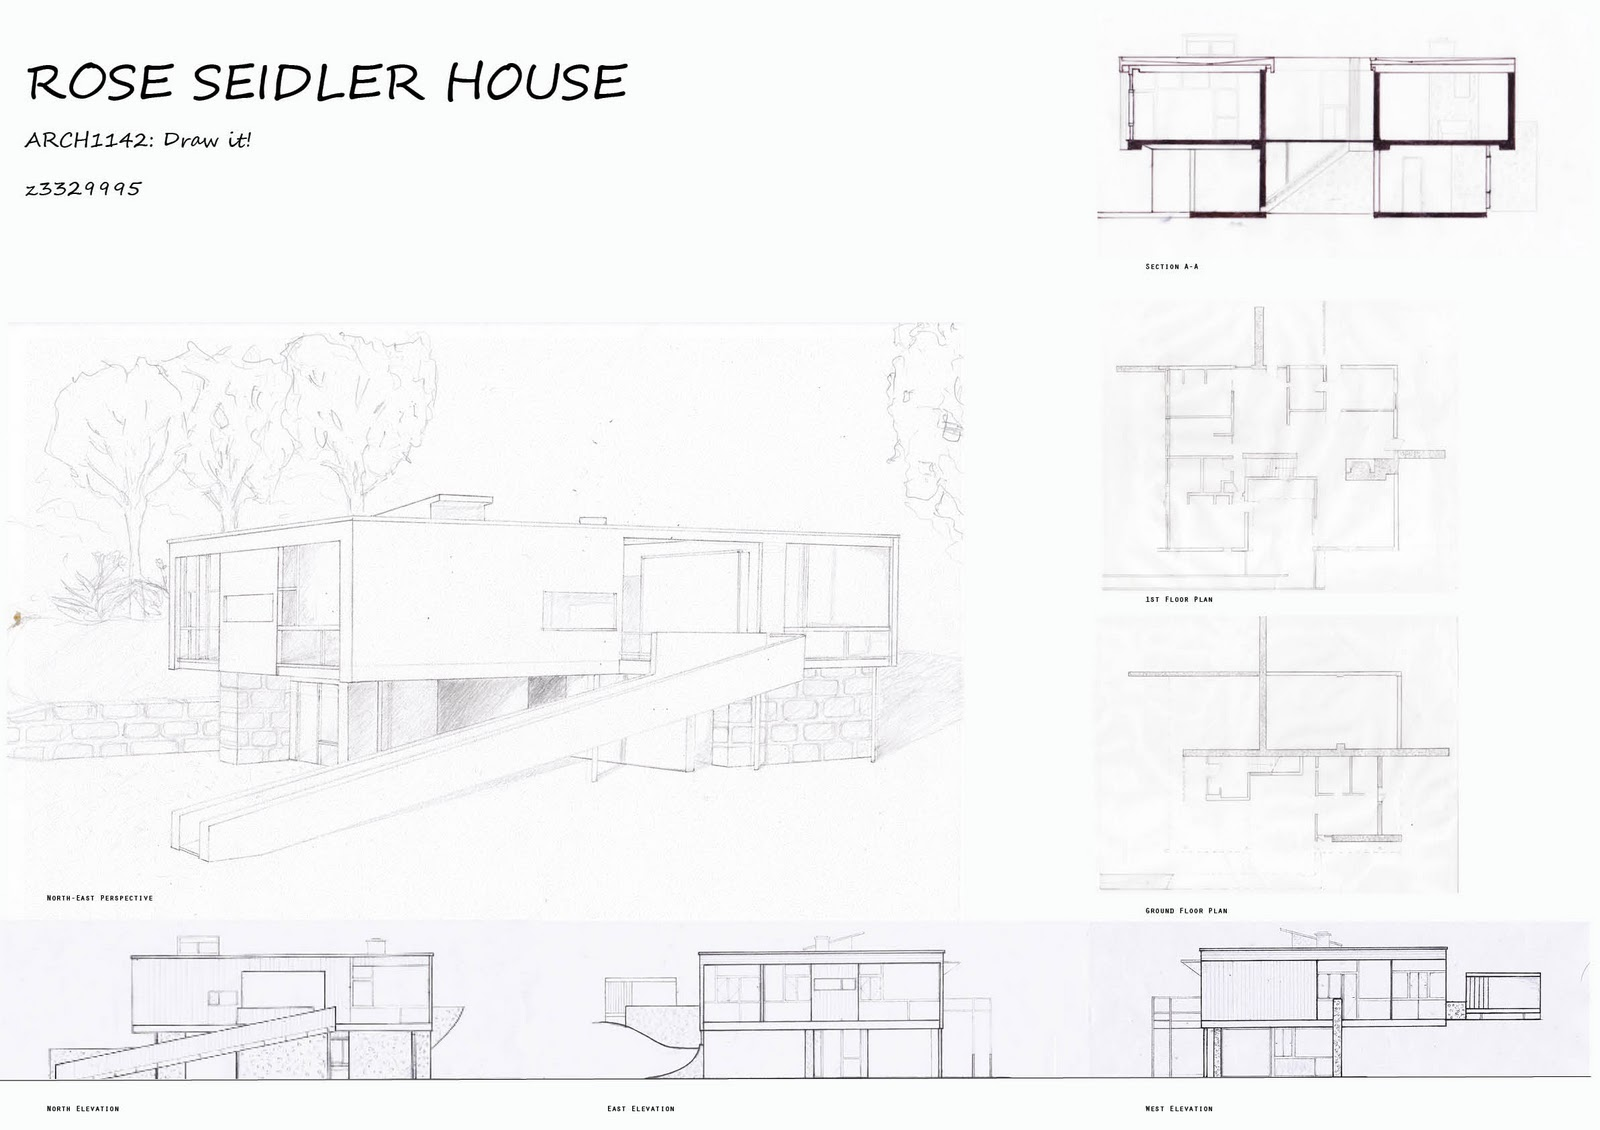 ARCH   Architectural CommunicationsI placed the floor plans next to the corresponding floor in the perspective drawing  making it easier to picture the interior spaces when looking at the d